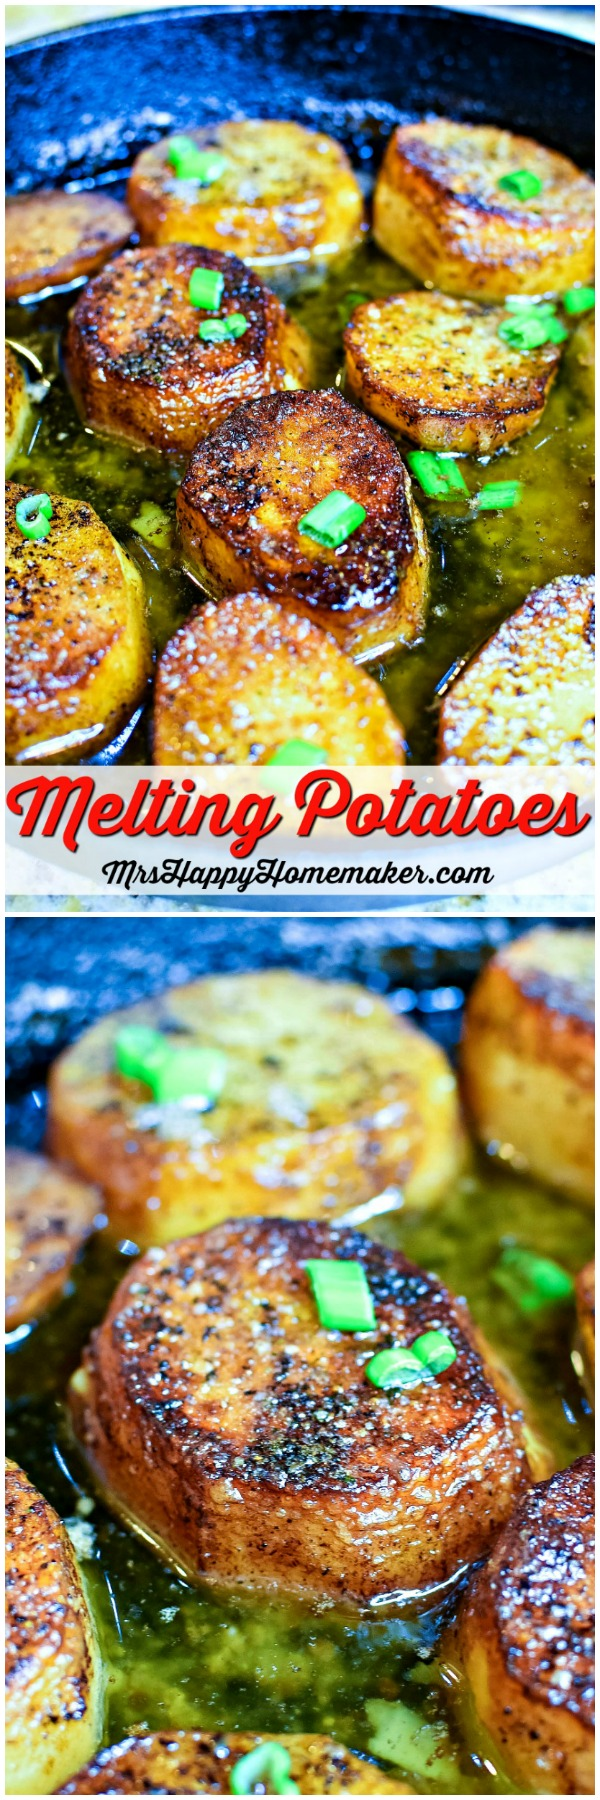 Melting Potatoes - round potatoes cooked in butter in a cast iron skillet, garnished with green onions | MrsHappyHomemaker.com